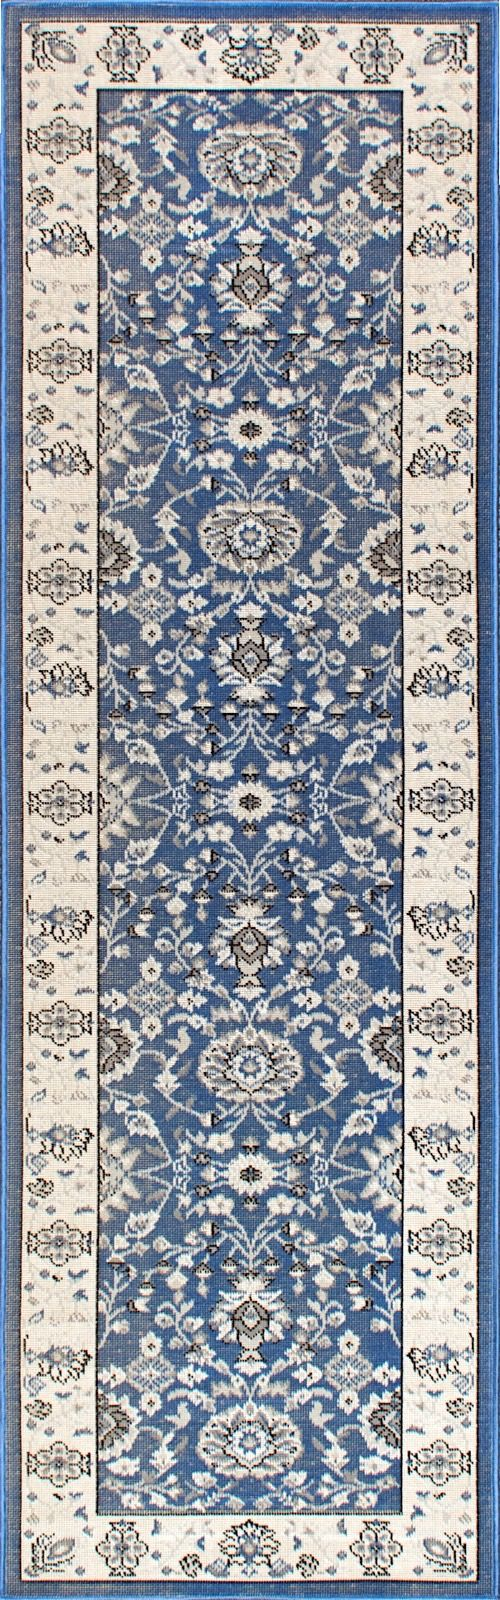 nuloom starnes country & floral area rug collection